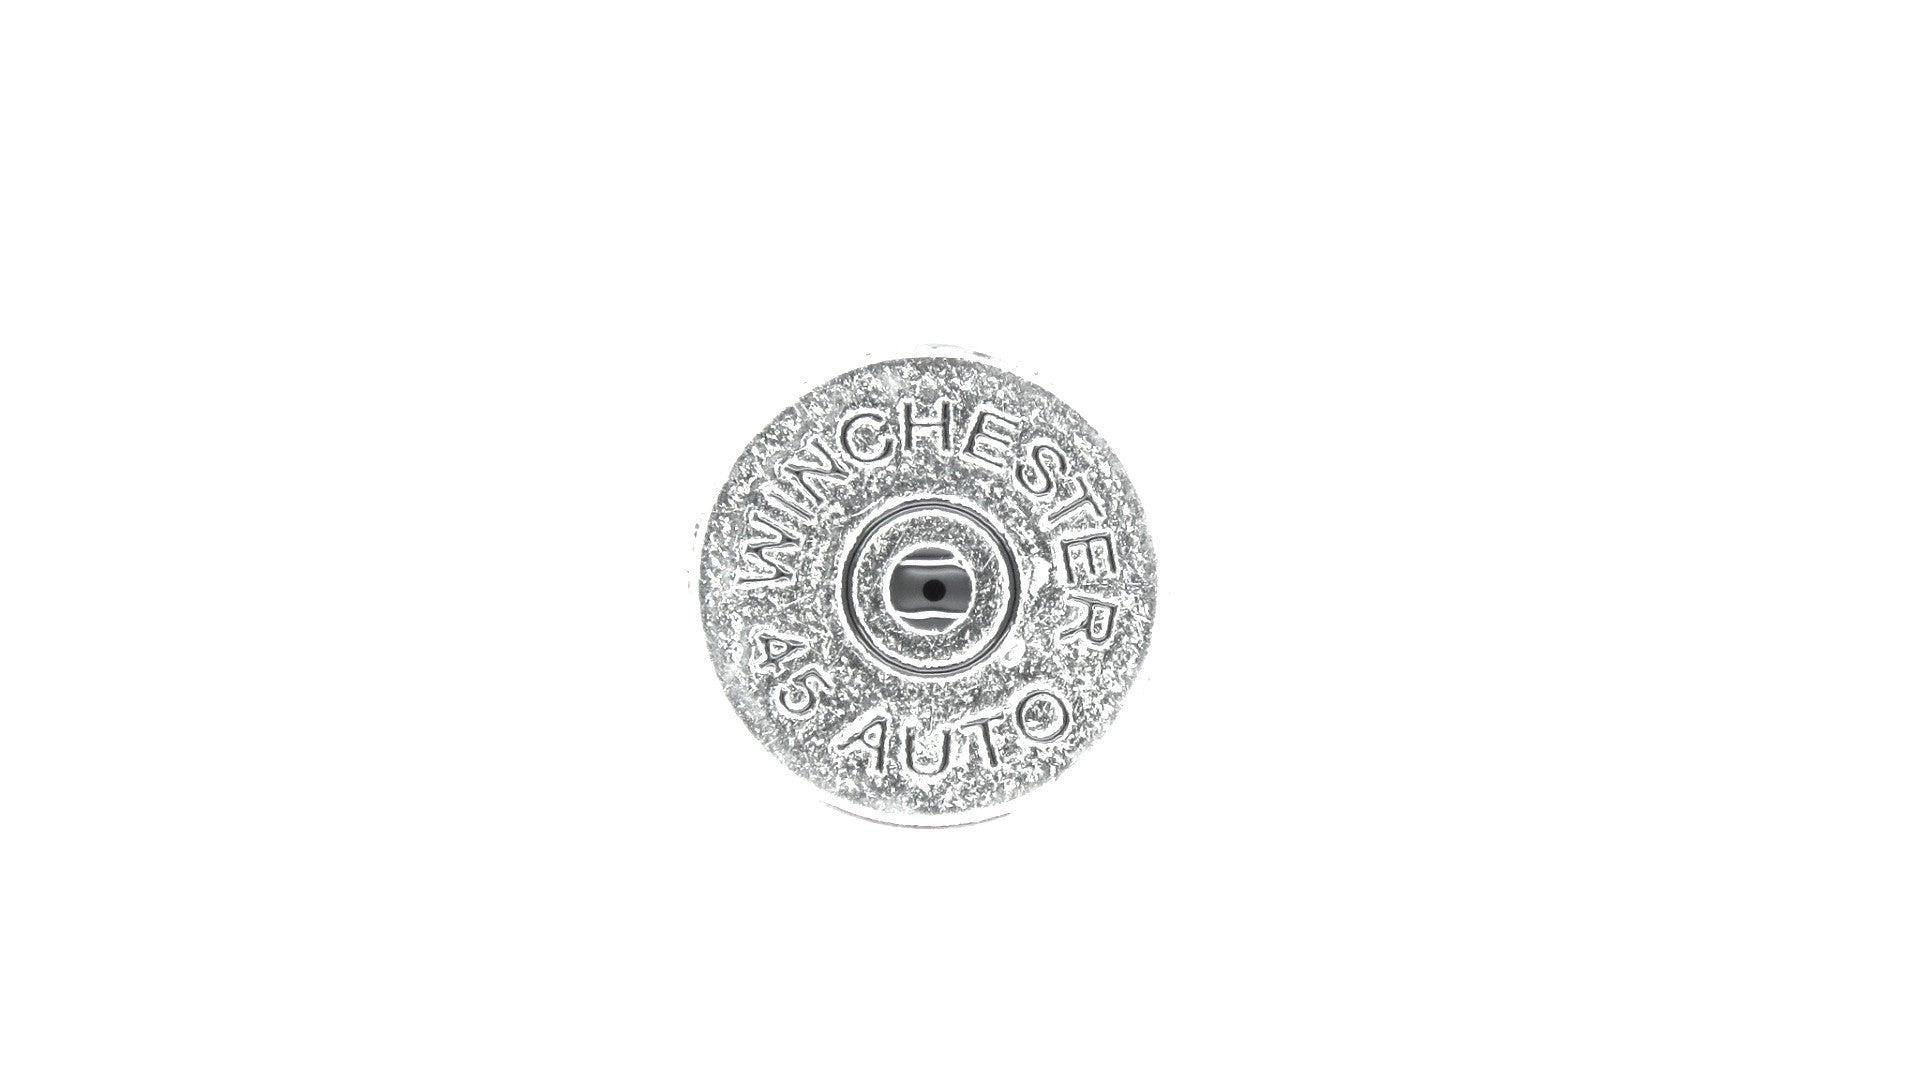 Replica Winchester 45 Bullet Floating Charm